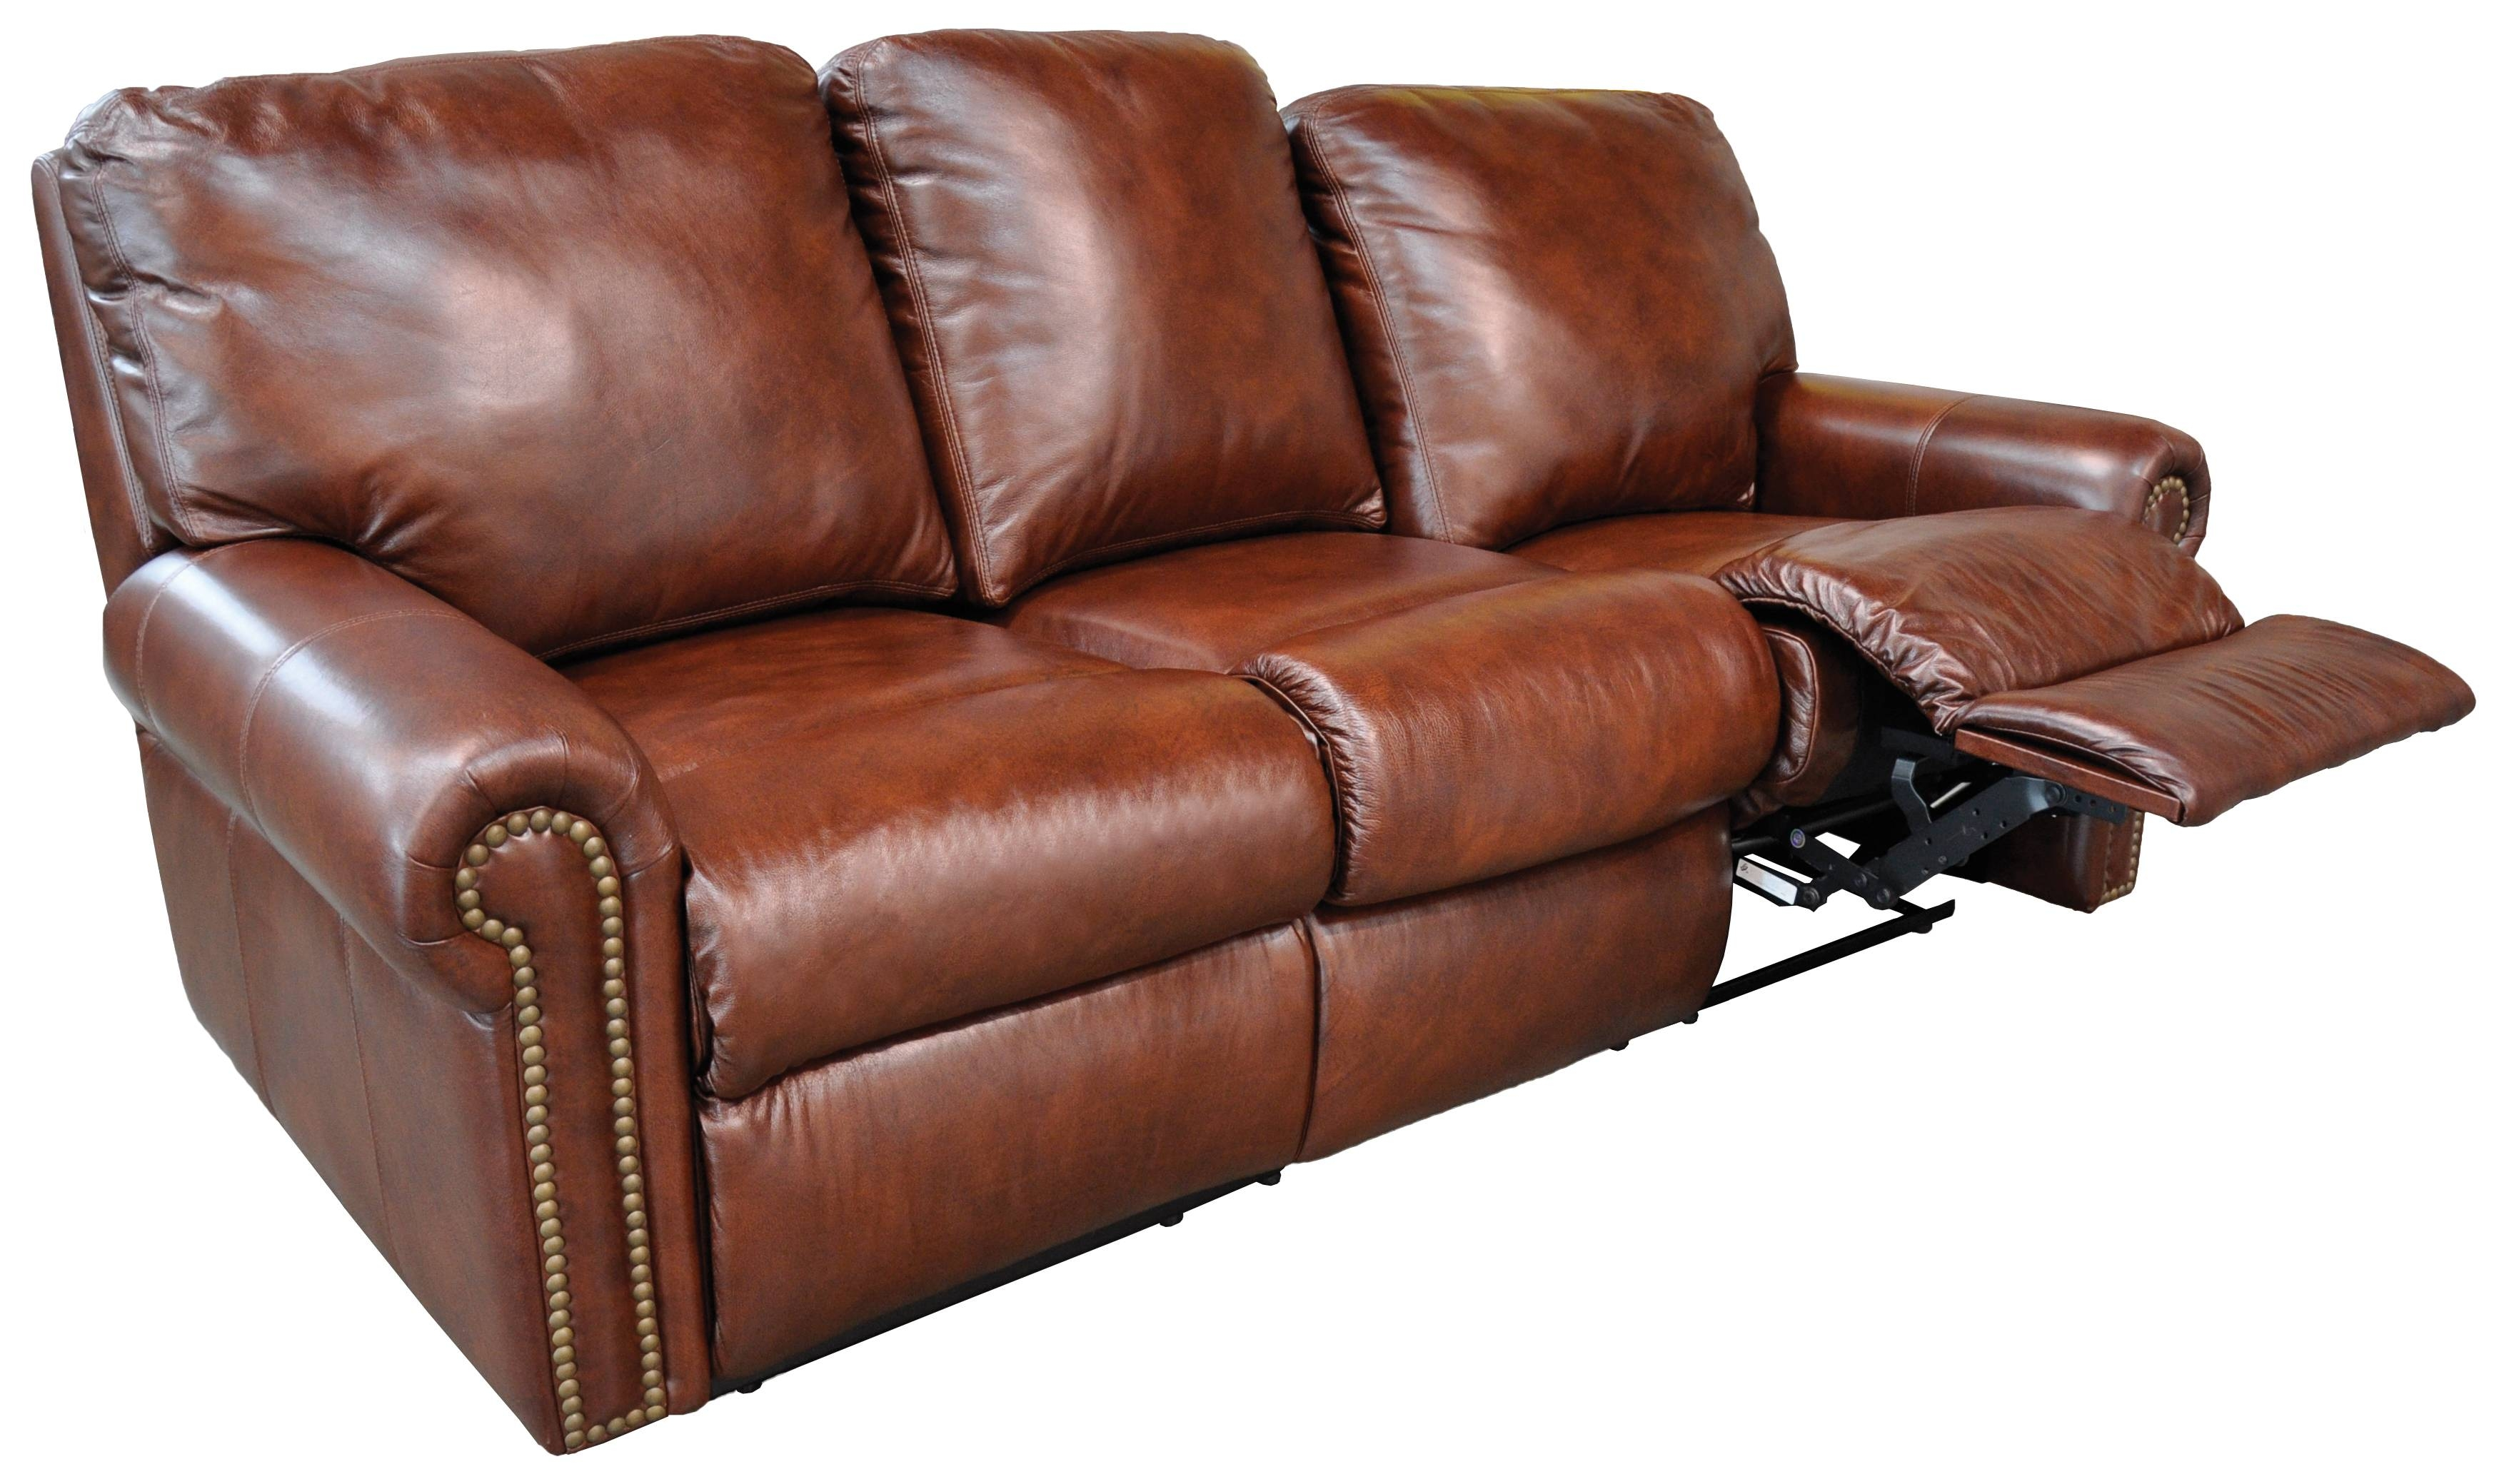 Furniture: Appealing Leather Reclining Couch For Decorating Your intended for Chesterfield Recliners (Image 8 of 30)